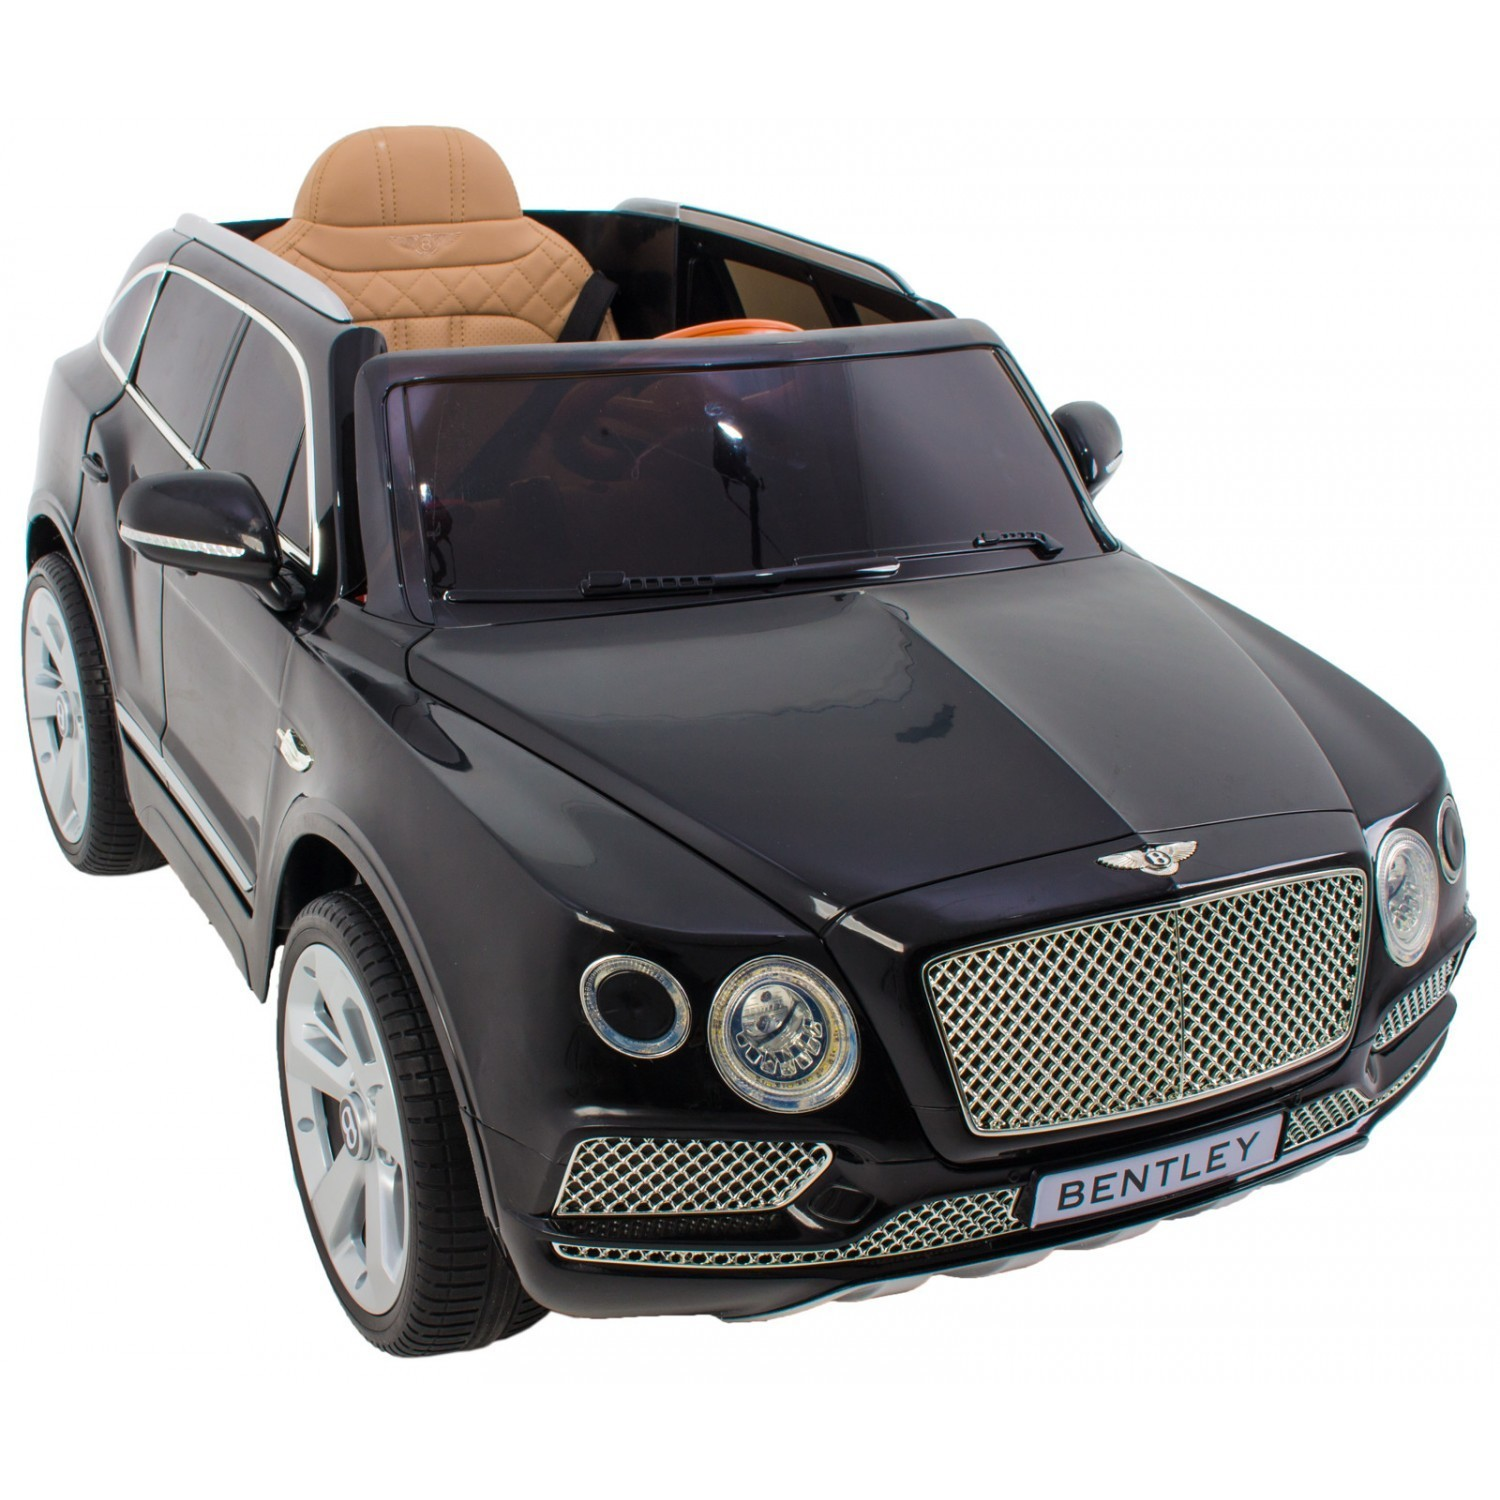 cardi b gets bentley bentayga toy car for unborn daughter autoevolution. Black Bedroom Furniture Sets. Home Design Ideas